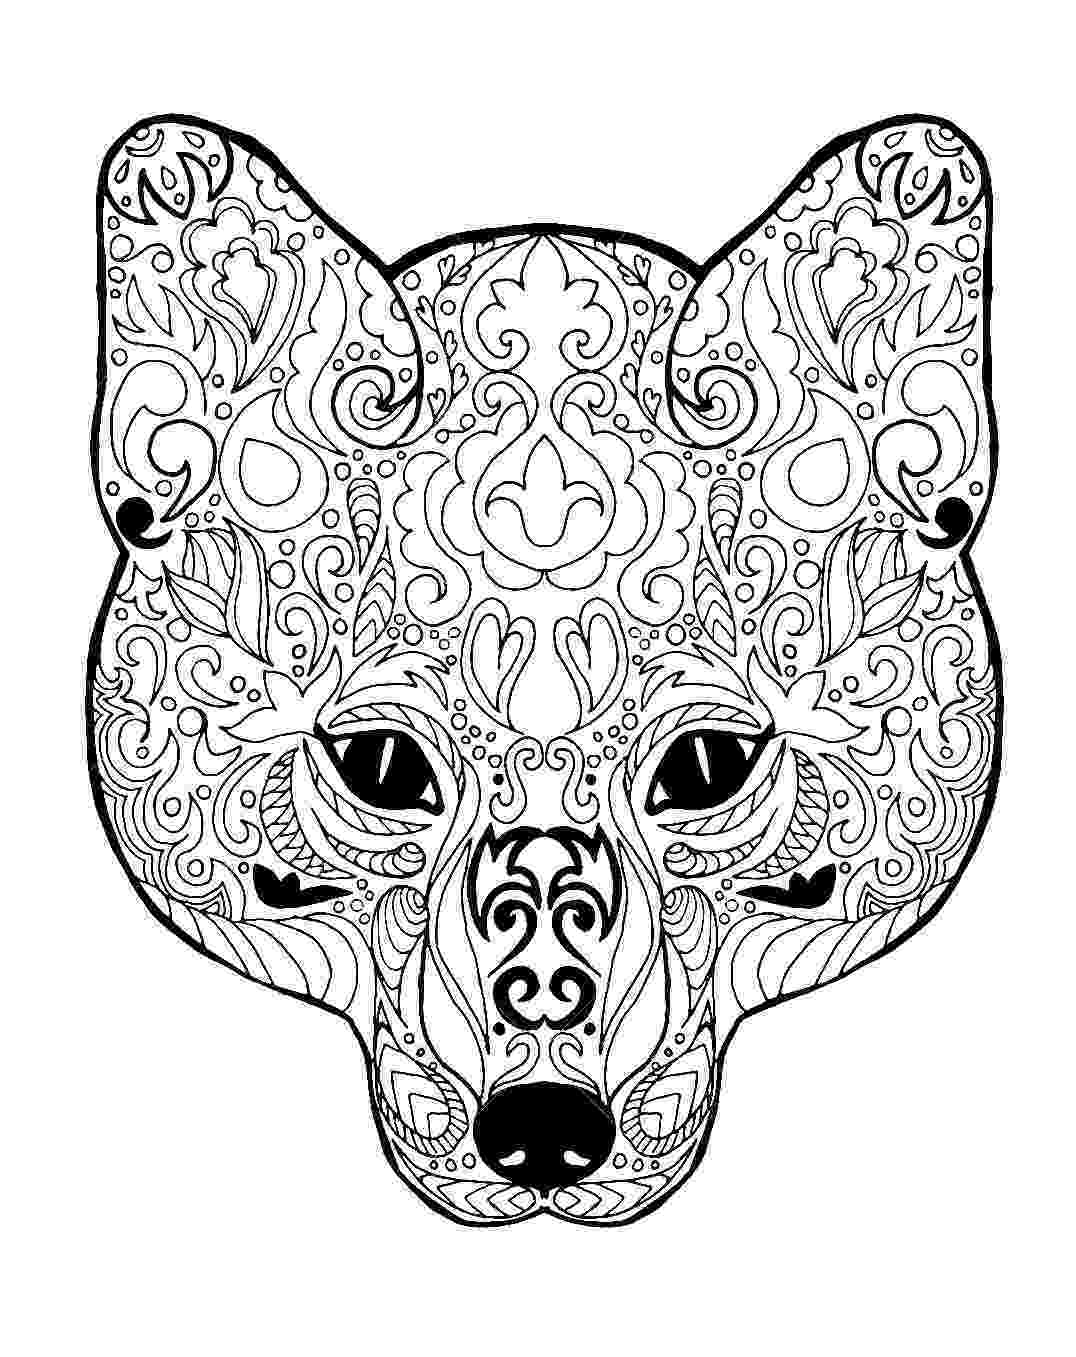 patterned coloring pages calming patterns for adults who color live your life in patterned coloring pages